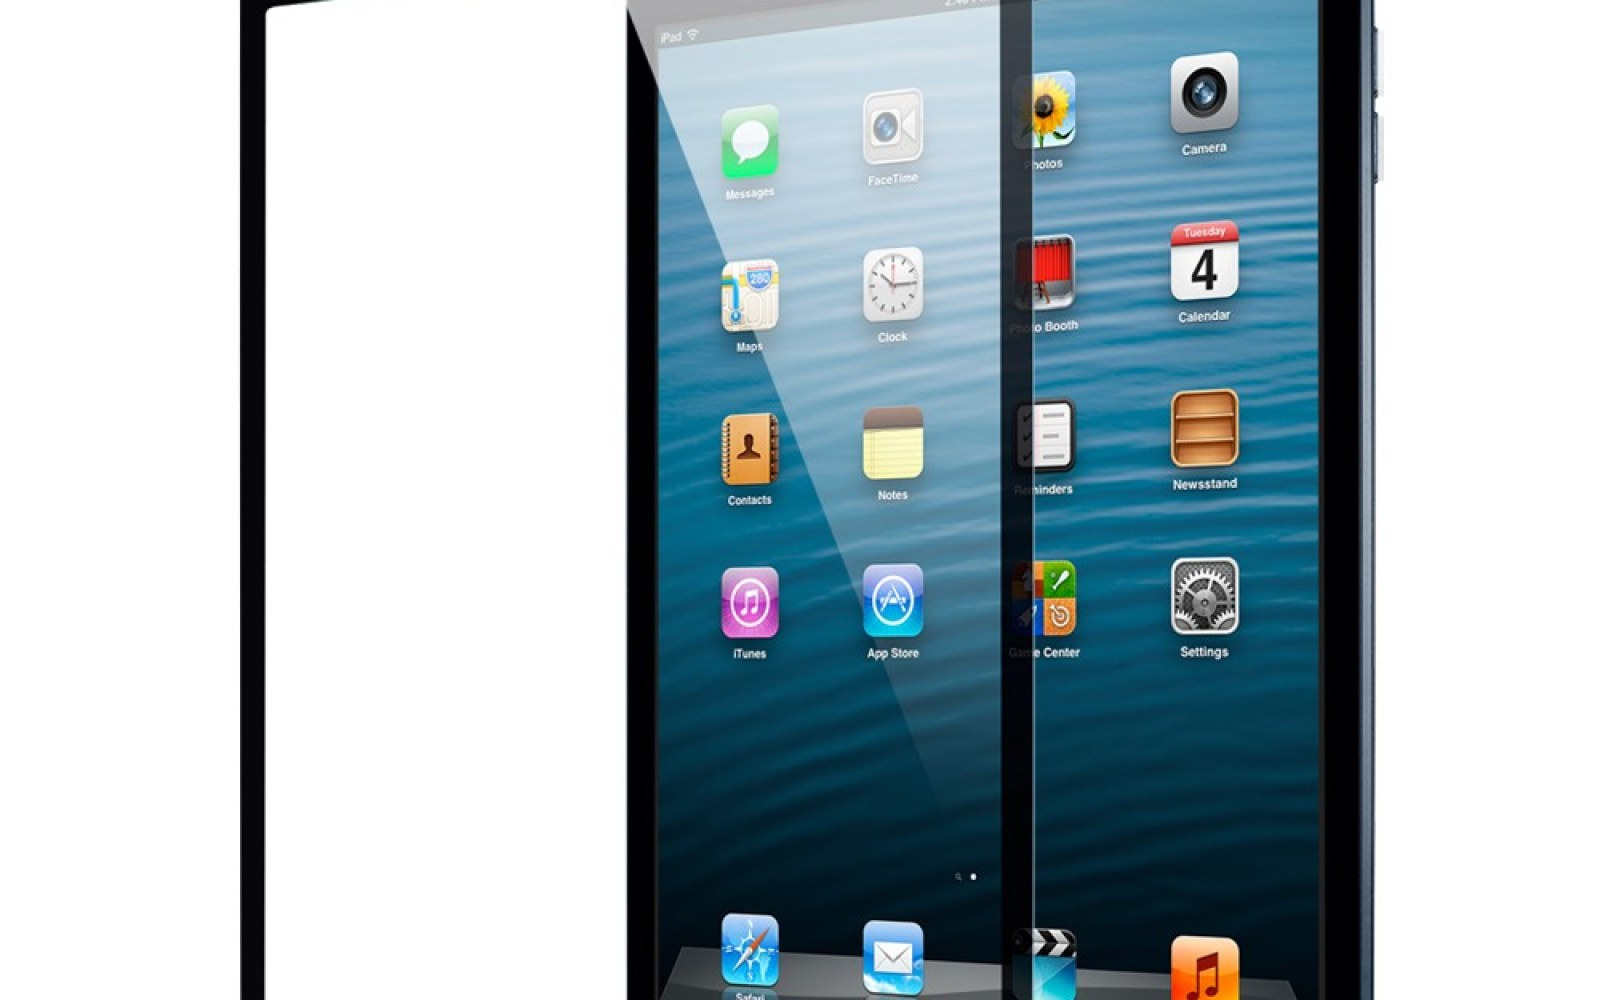 WSJ says what we all knew: iPad 5 will look like a big Mini